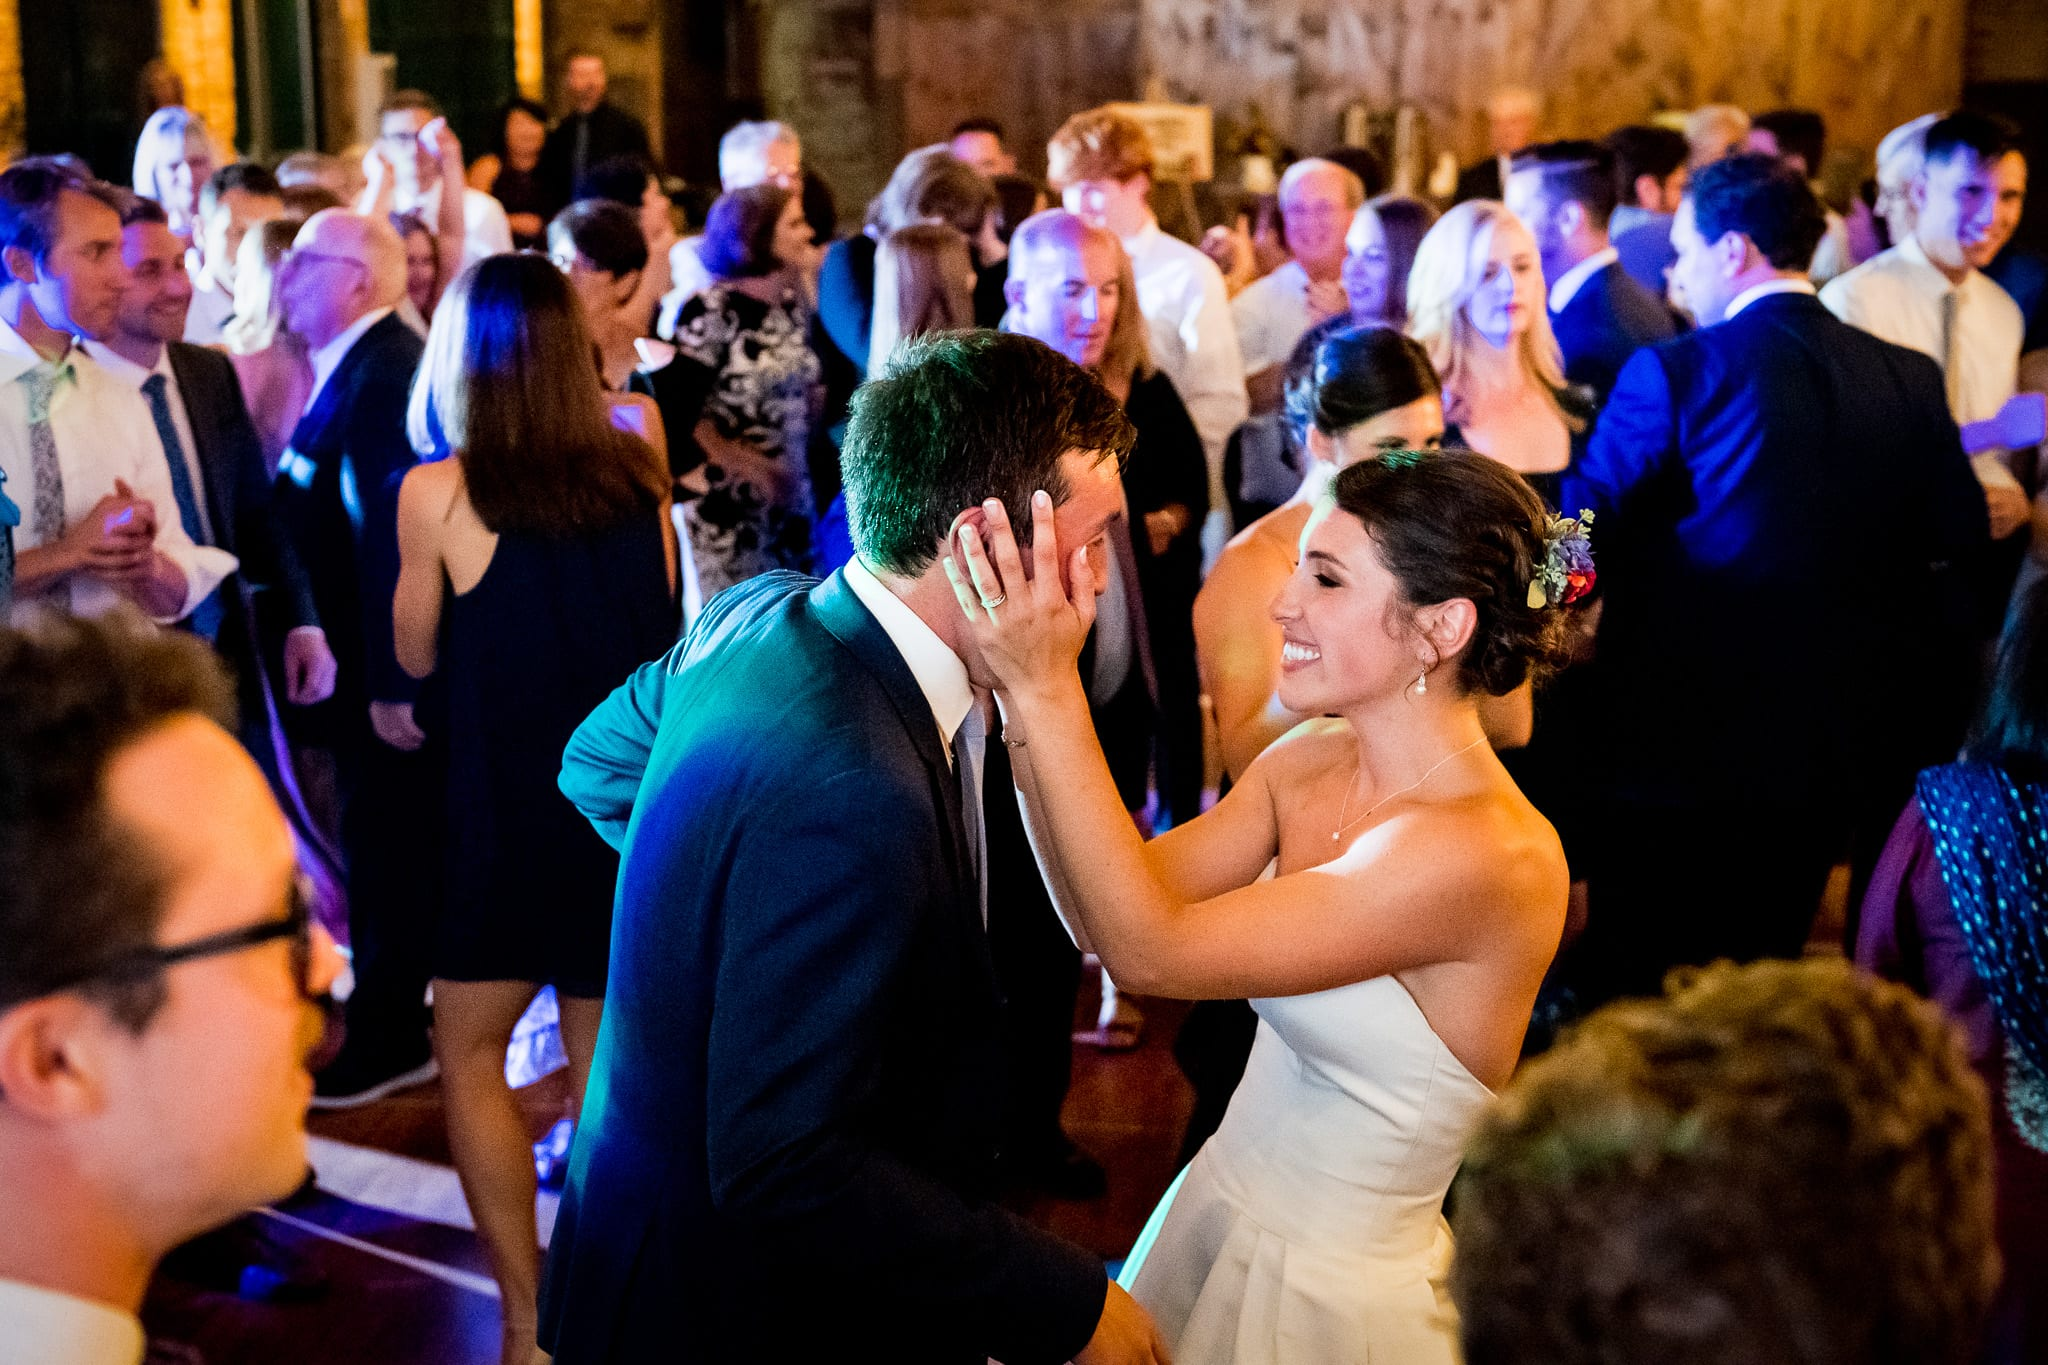 Bride squeezes her grooms face as they dance during their wedding